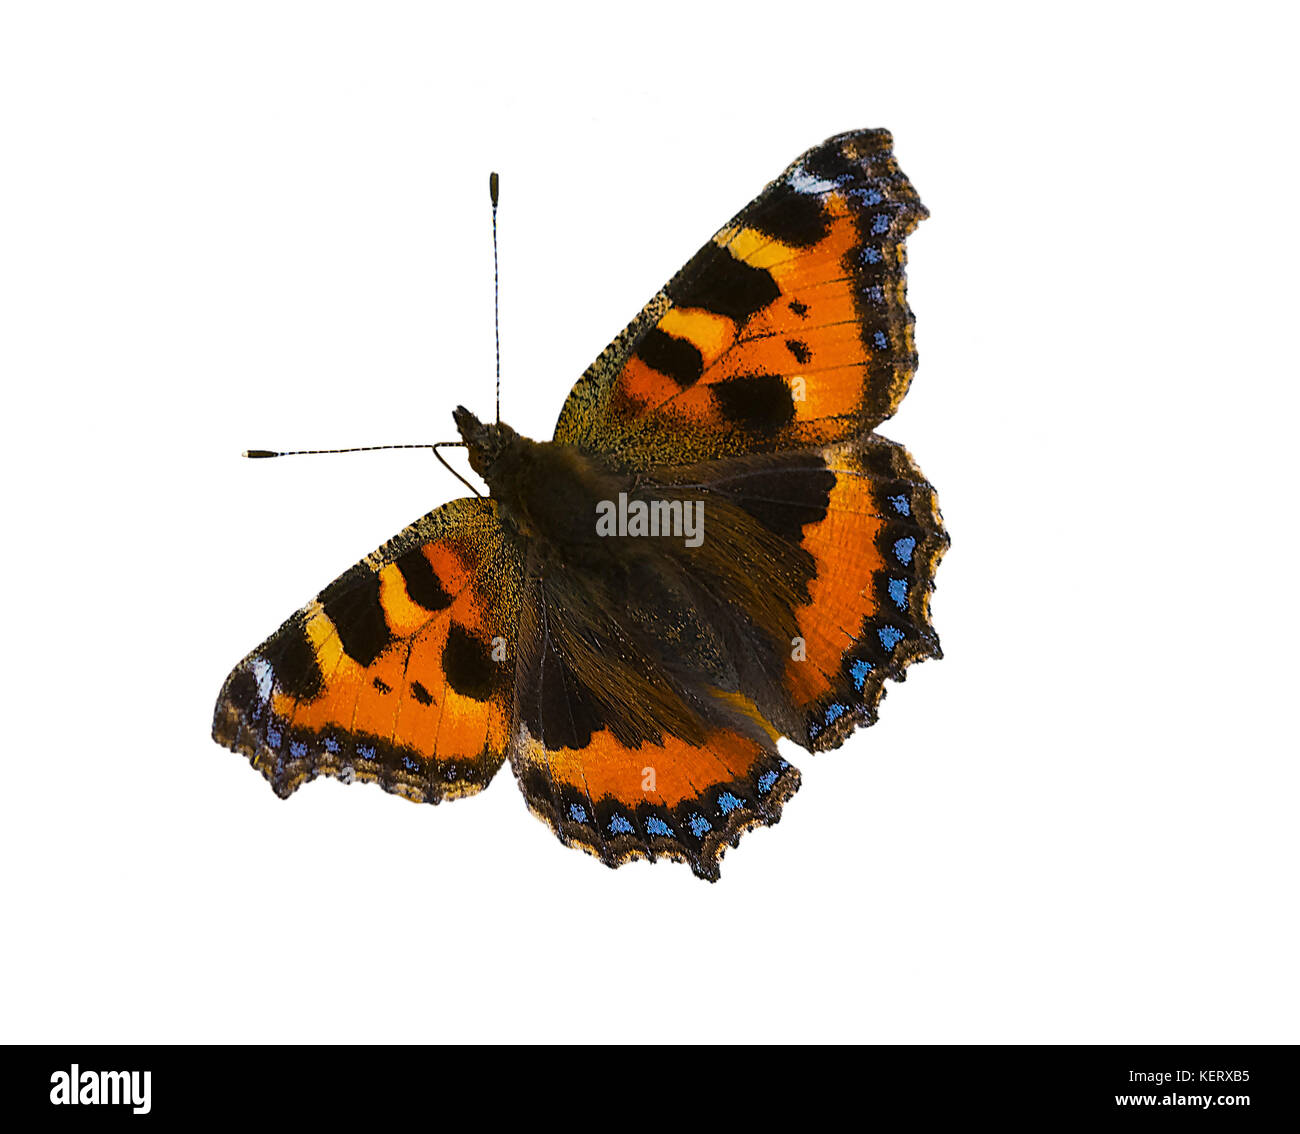 cut out image of a small tortoiseshell Aglais urticae butterfly - Stock Image